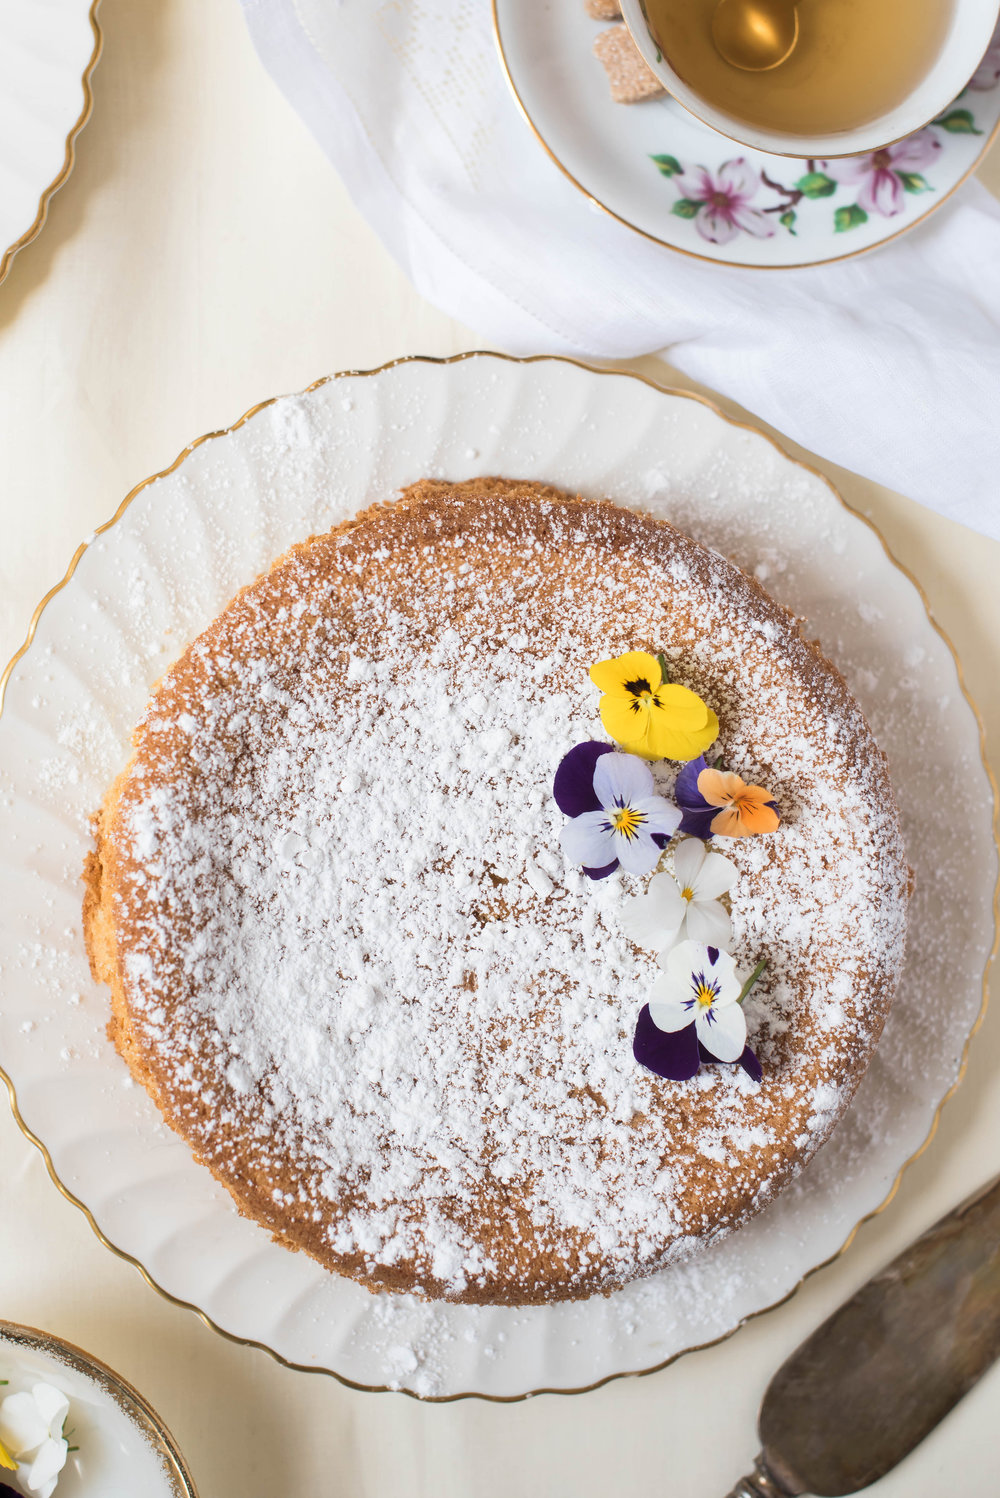 ROSE & IVY Journal Spring Celebrations Lemon Almond Cake